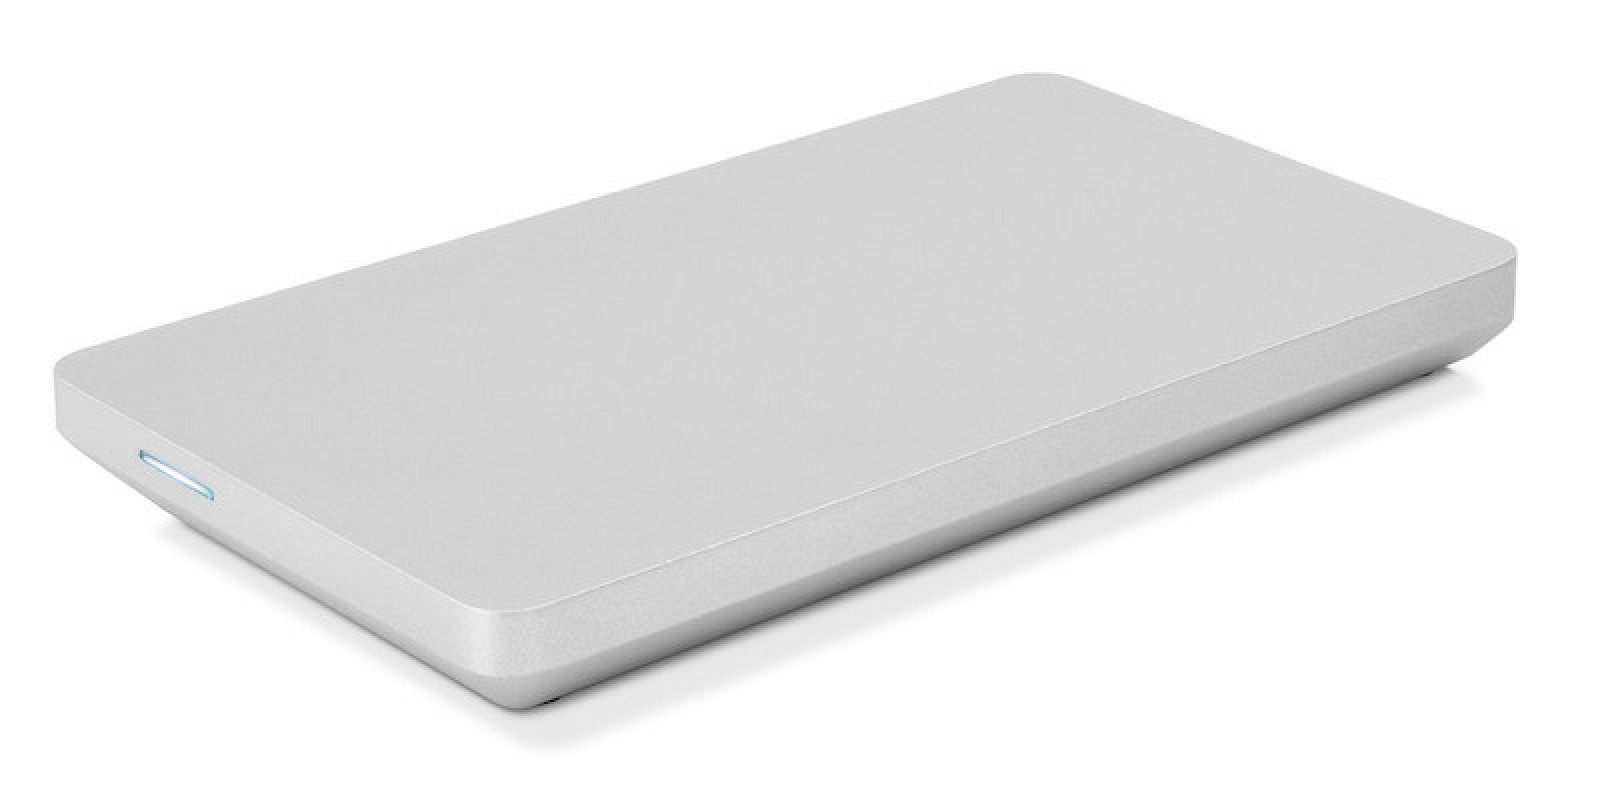 OWC Debuts 'Fastest USB-C SSD Ever' With Up to 2TB of